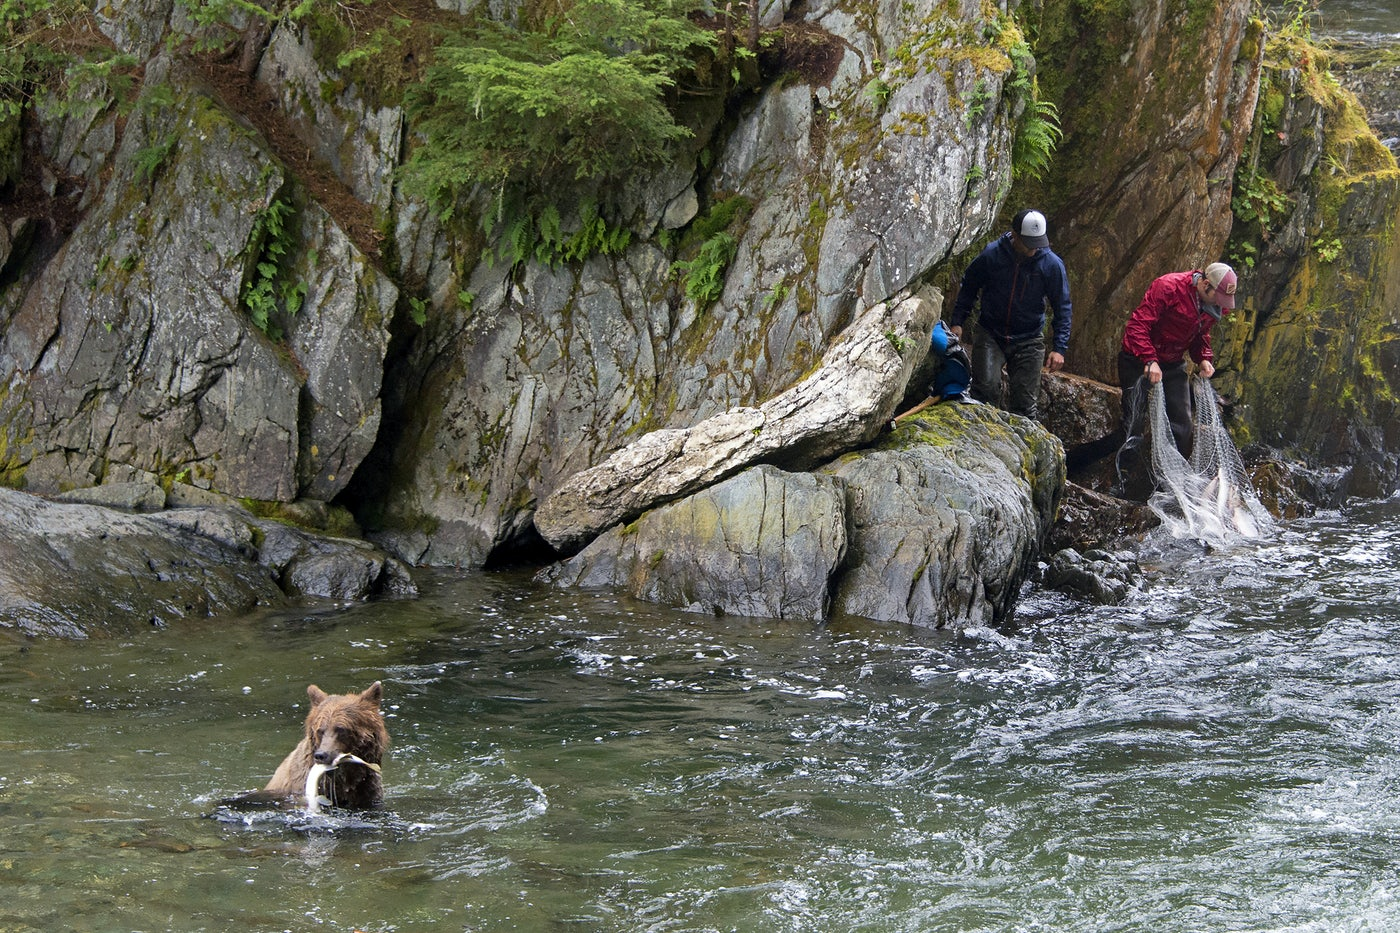 A bear and two humans catch salmon in the Tongass National Forest in Alaska.